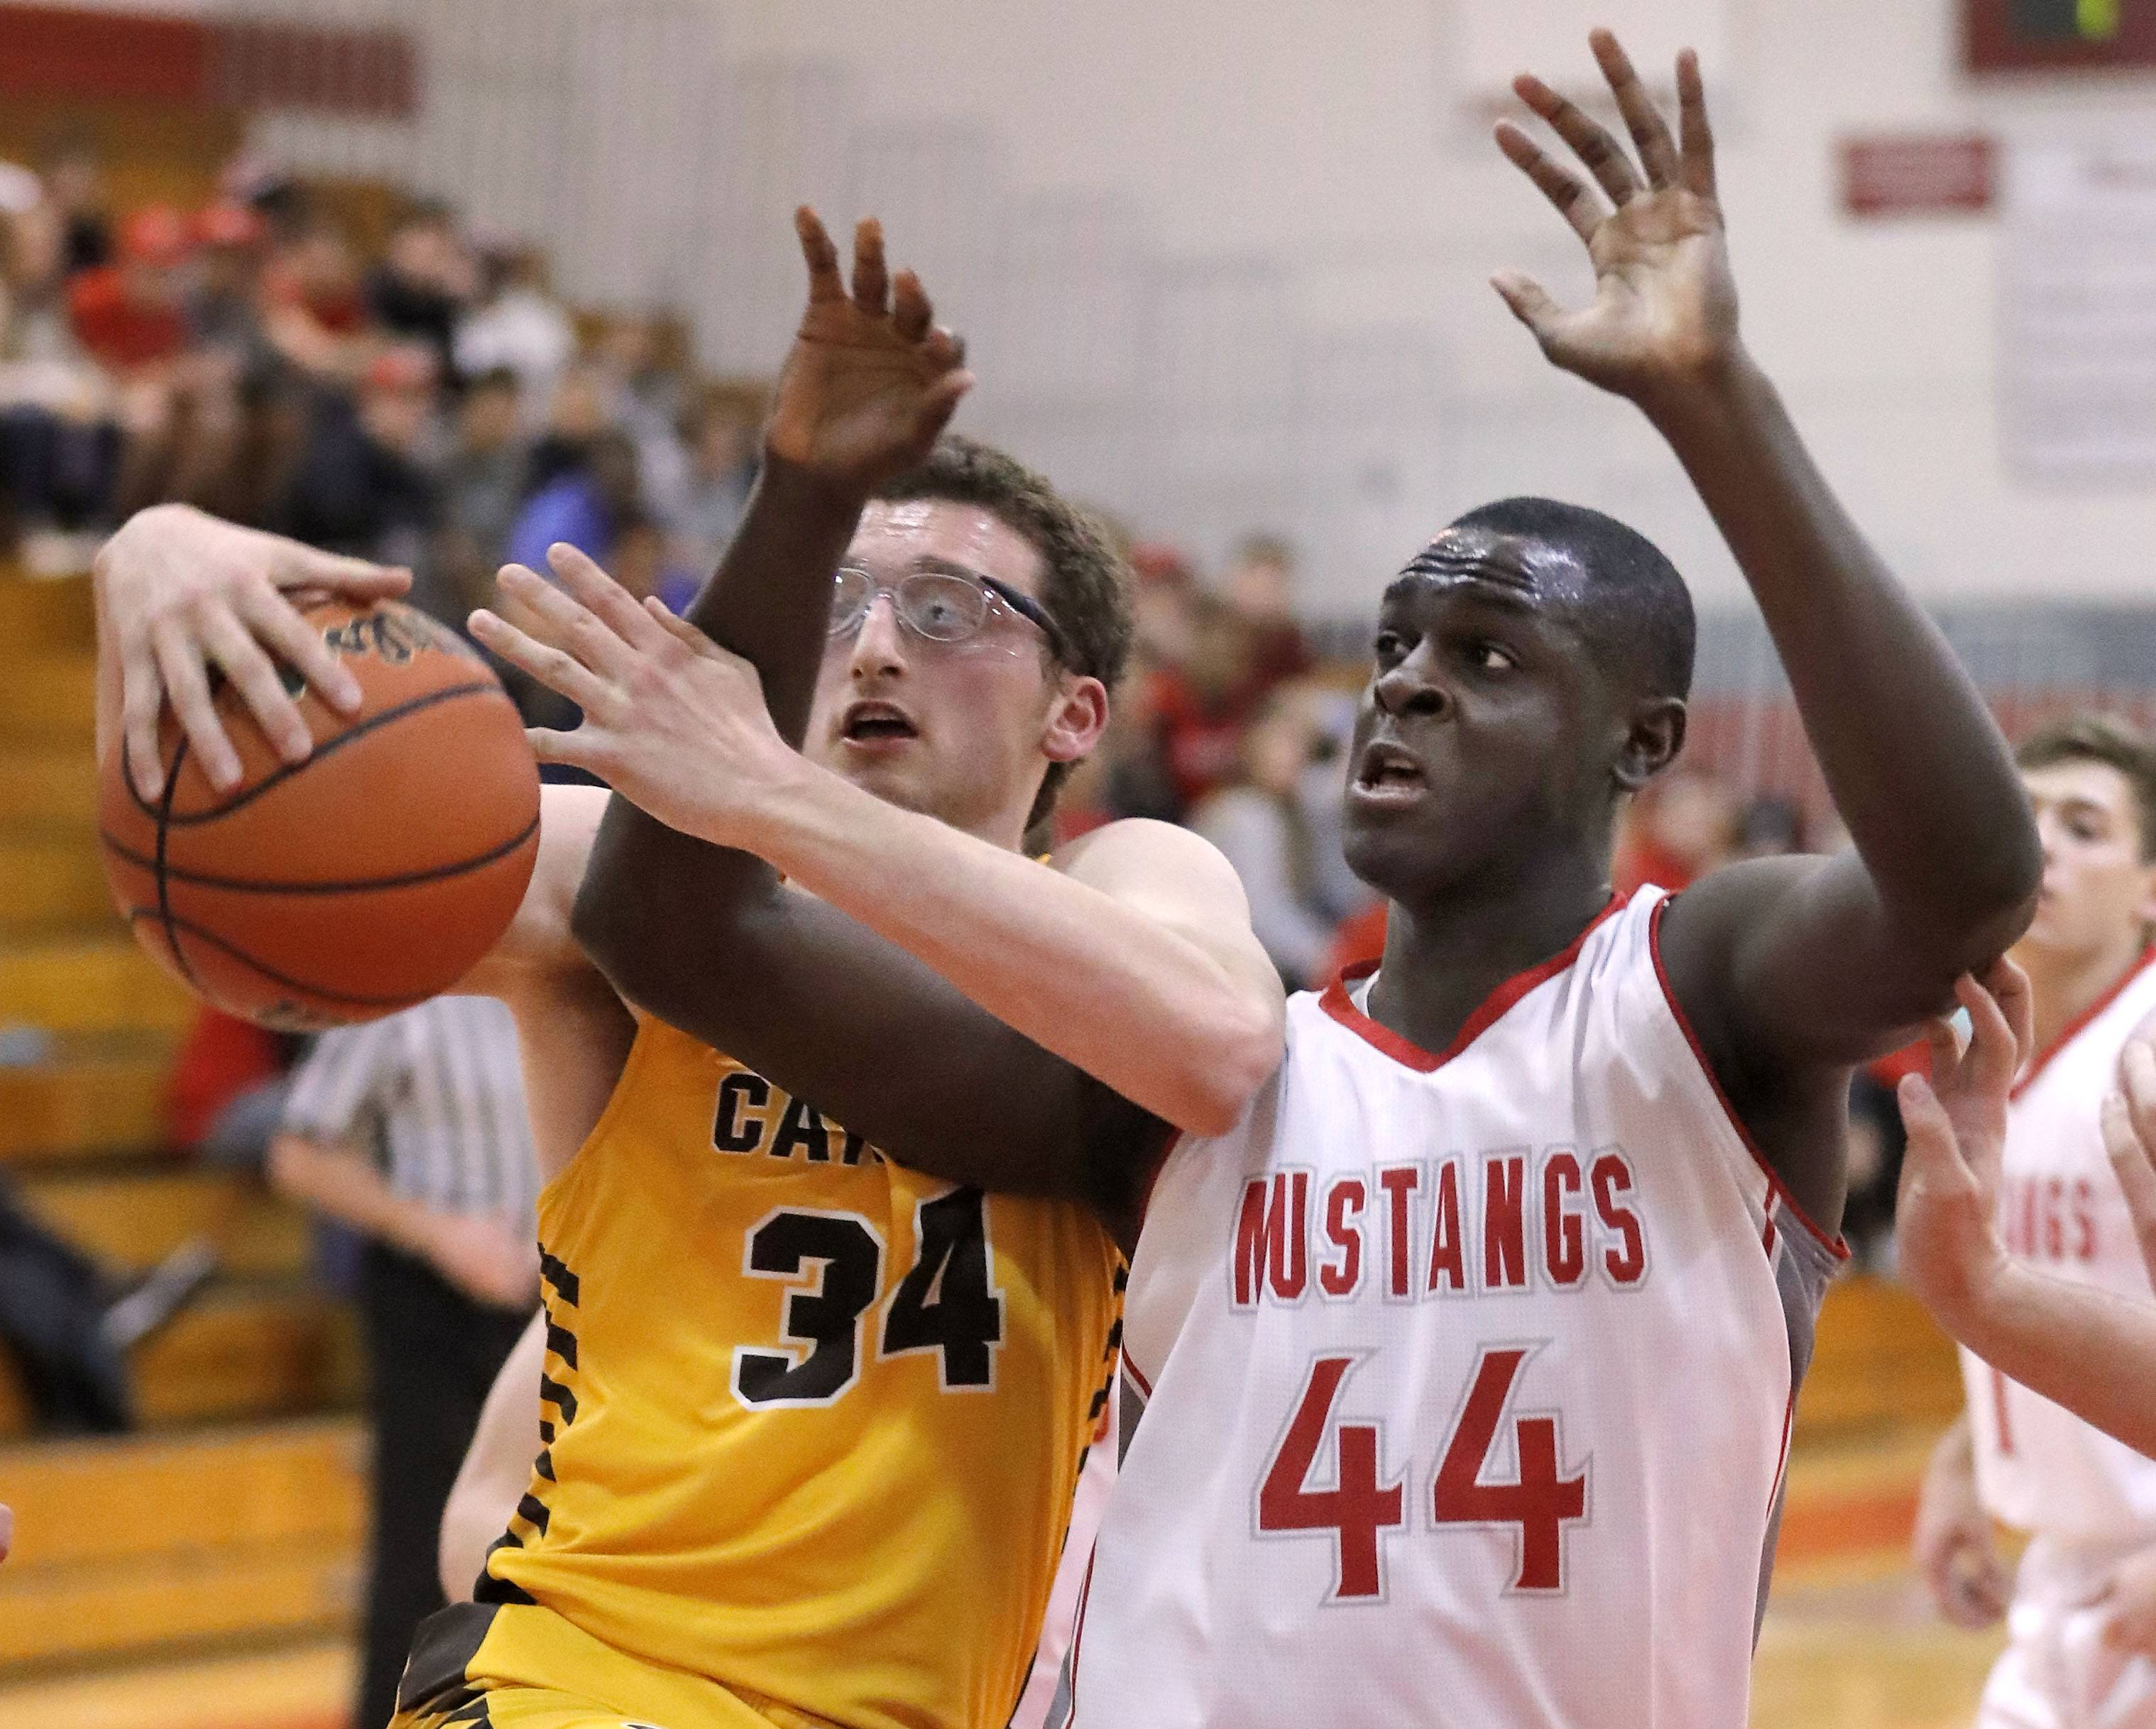 Carmel's Johnny Roeser, left, and Mundelein's Scottie Ebube battle for a rebound during their game Wednesday at Mundelein High School.